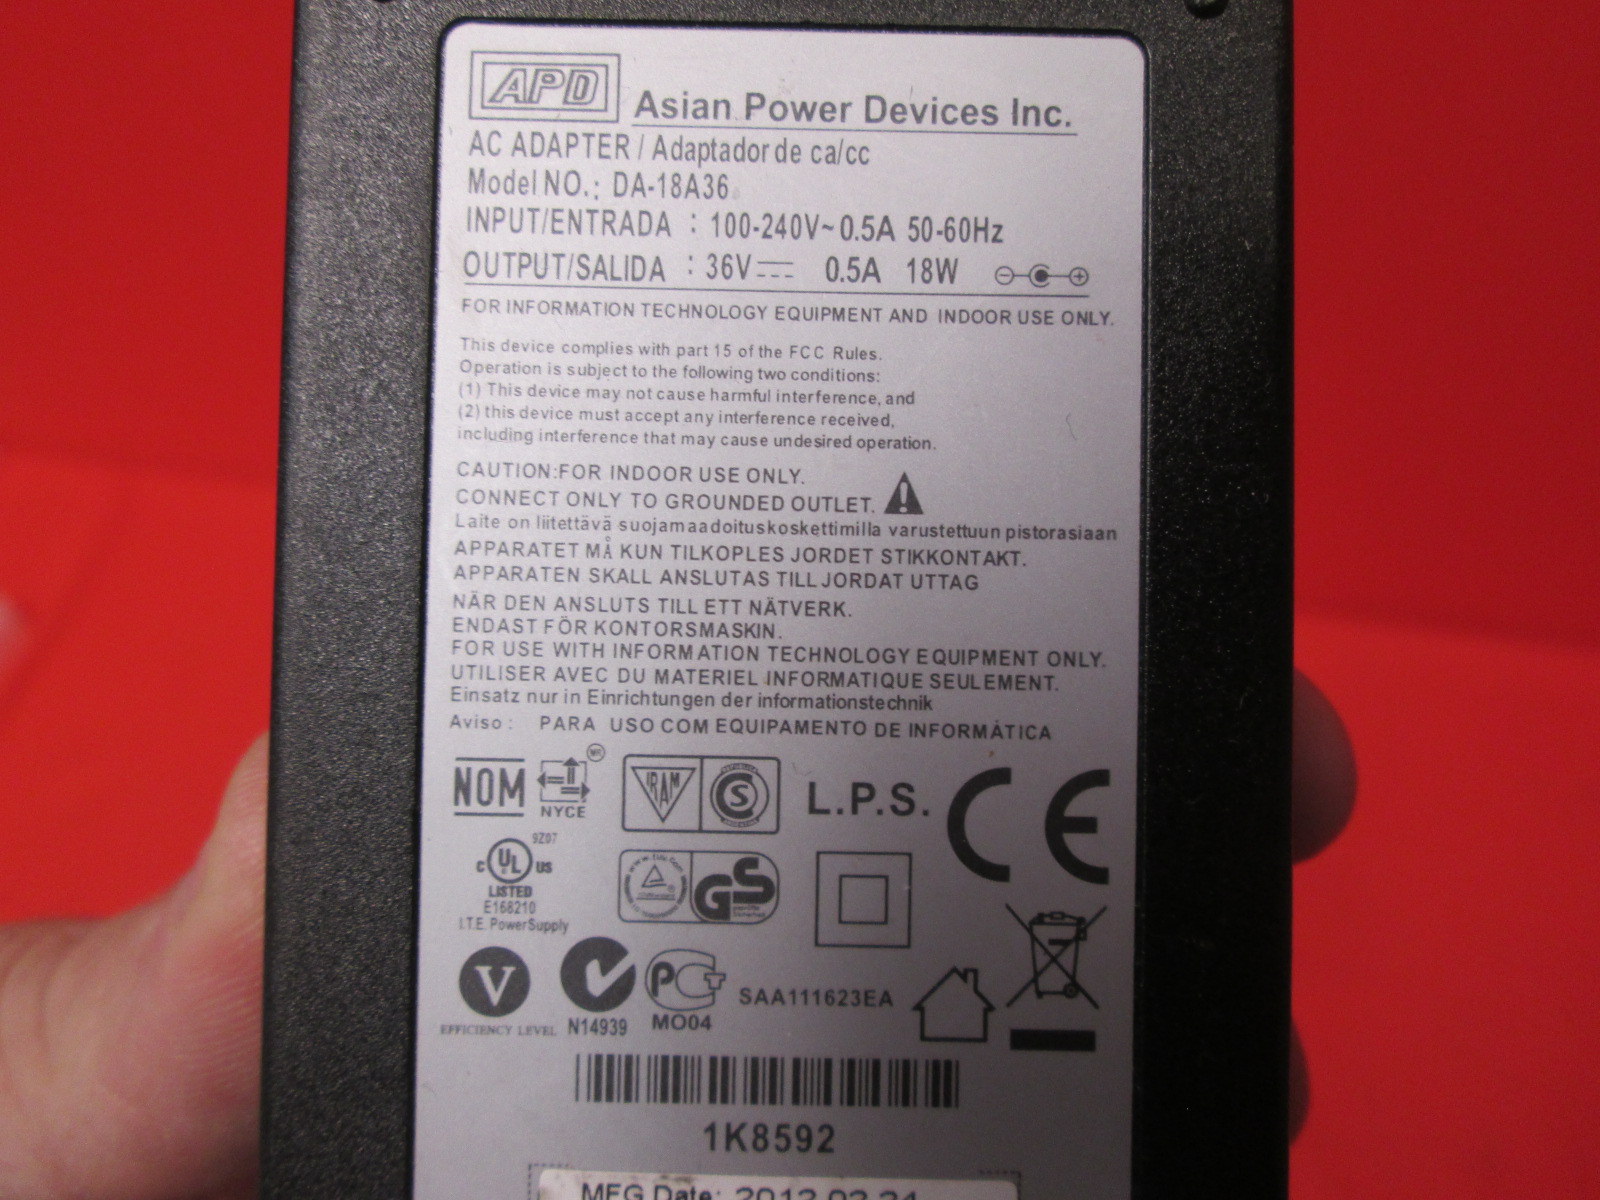 AC Adapter Apd DA-18A36 Asian Power Devices Kodak Printer Power Supply